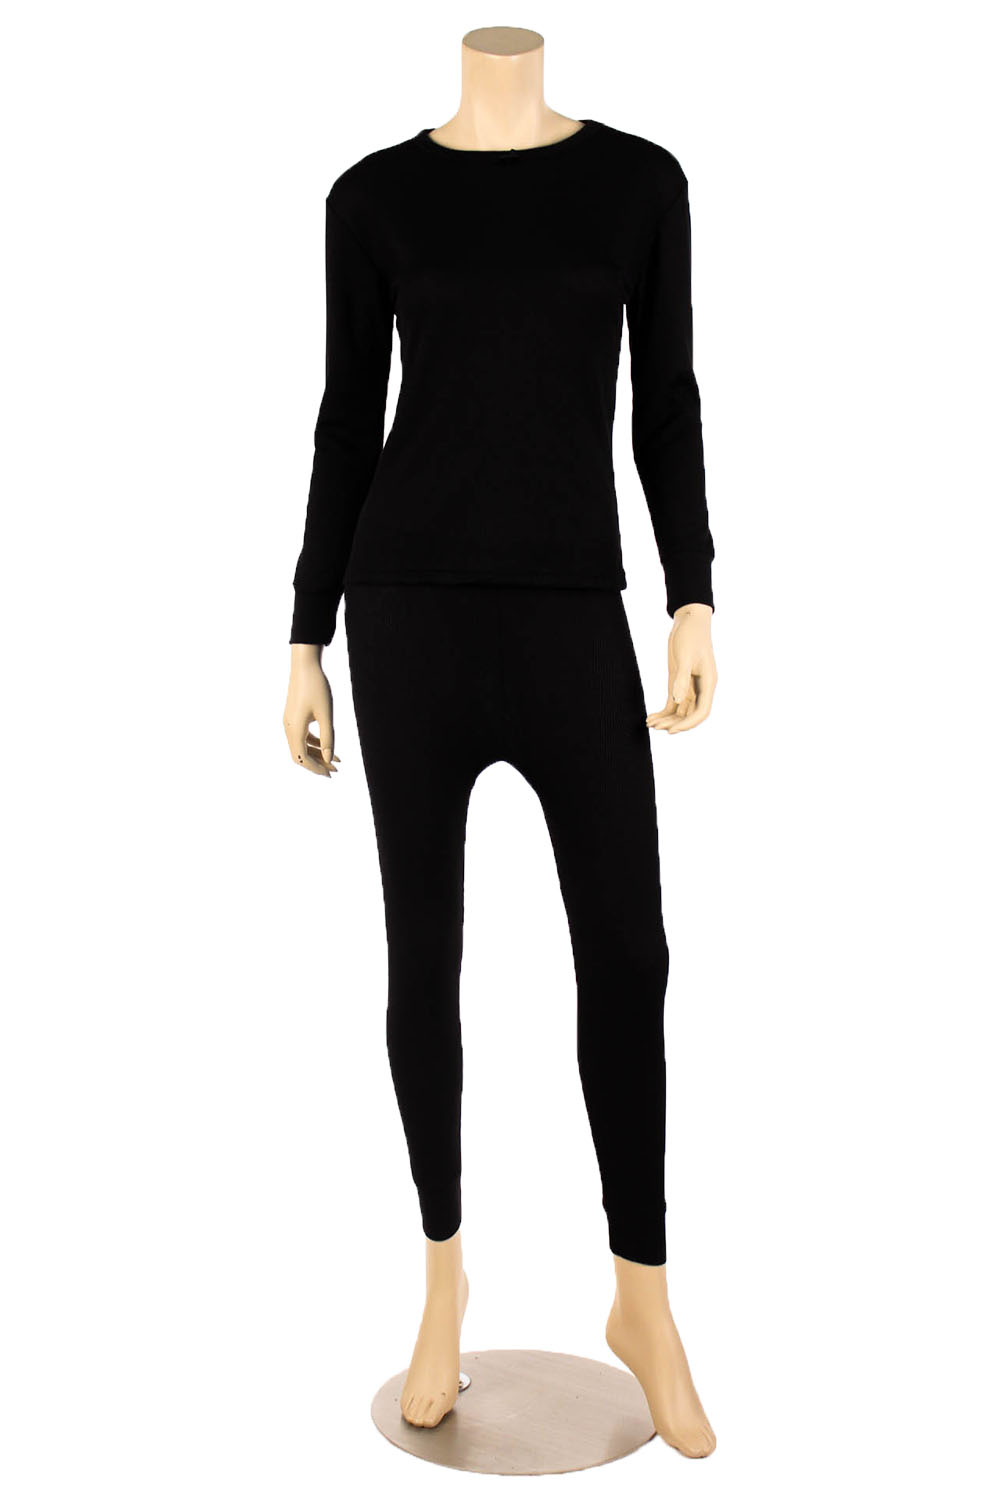 WuHou Women's 100% Cotton Thermal Underwear Two Piece Long Johns Set by